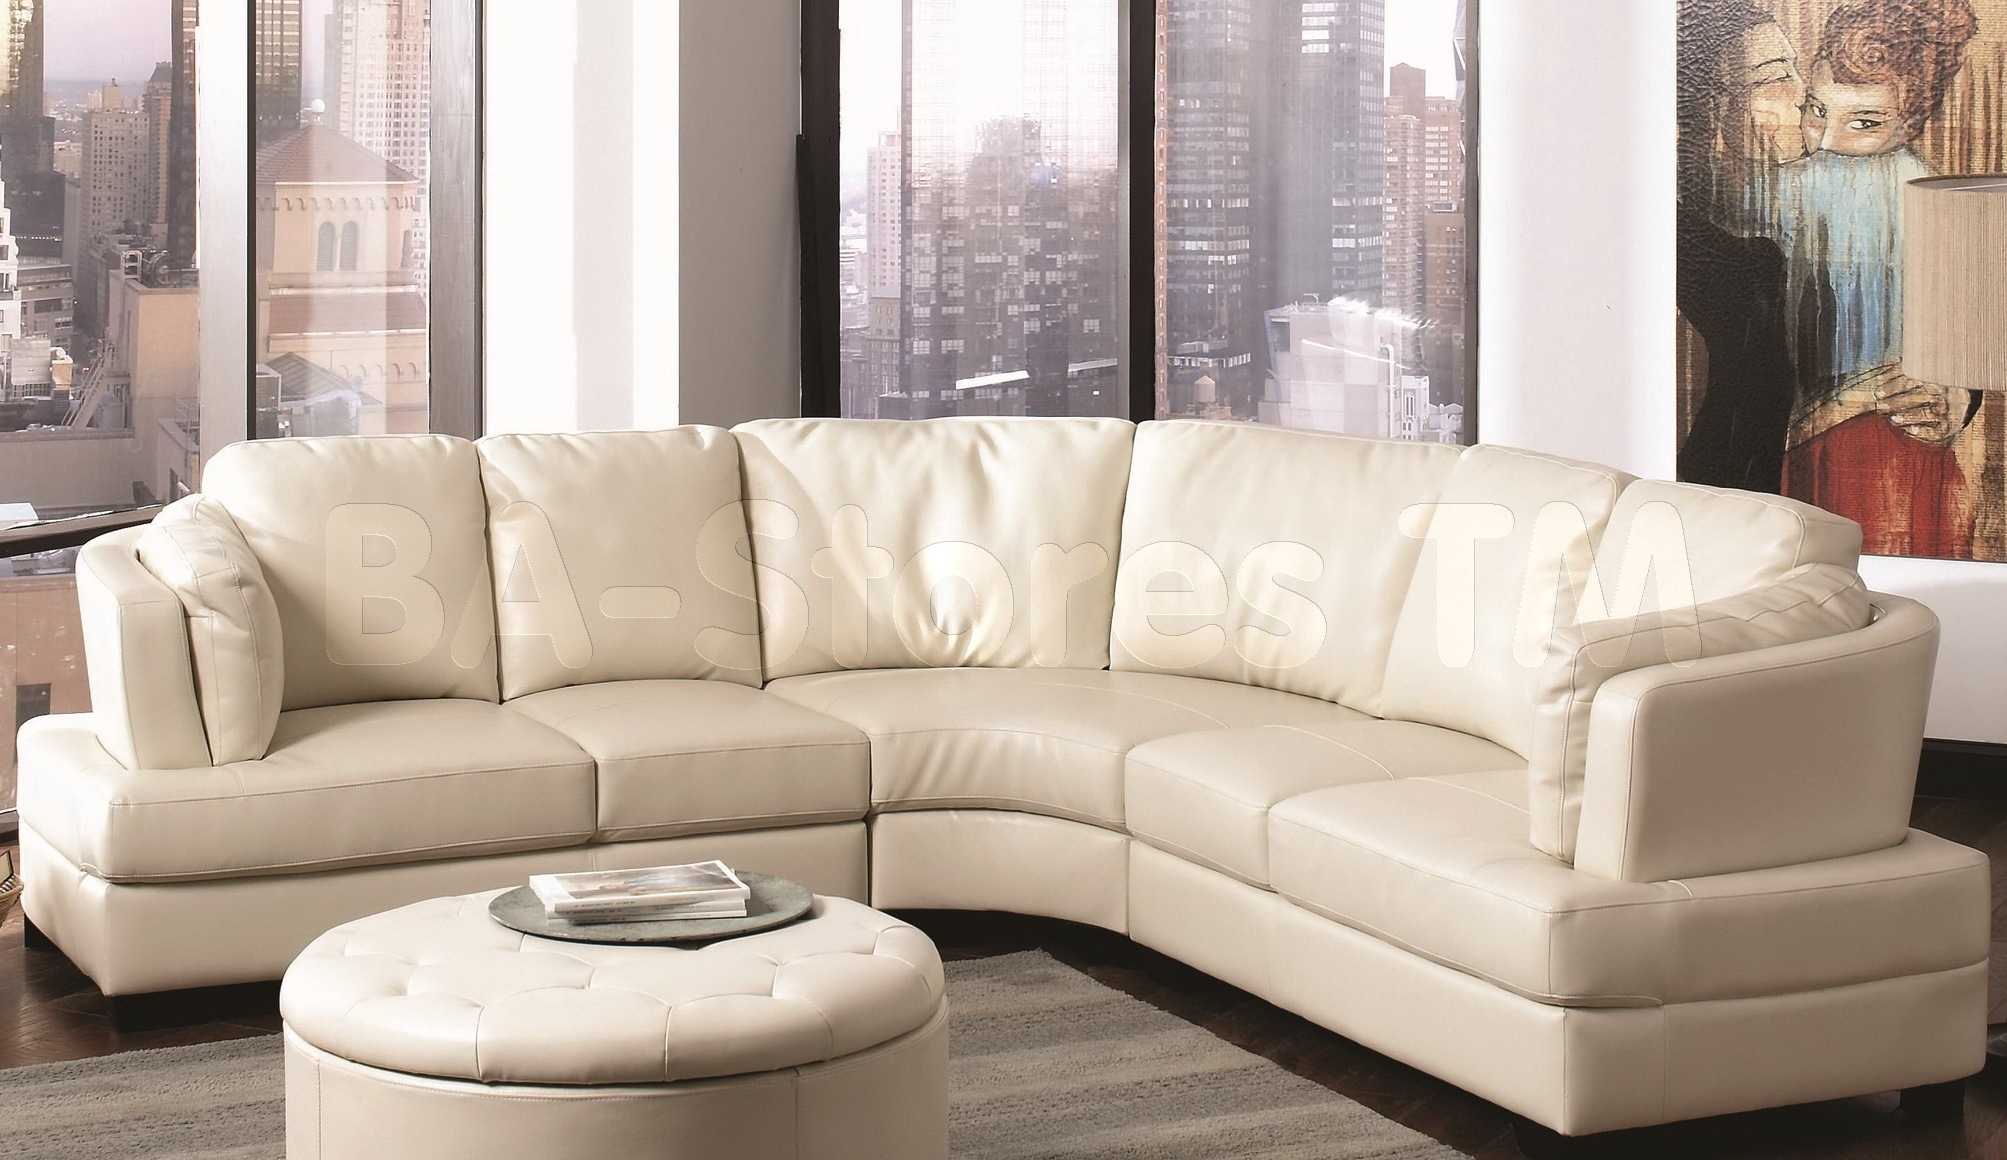 curved sectional sofa set blu dot review 10 collection of round sofas ideas